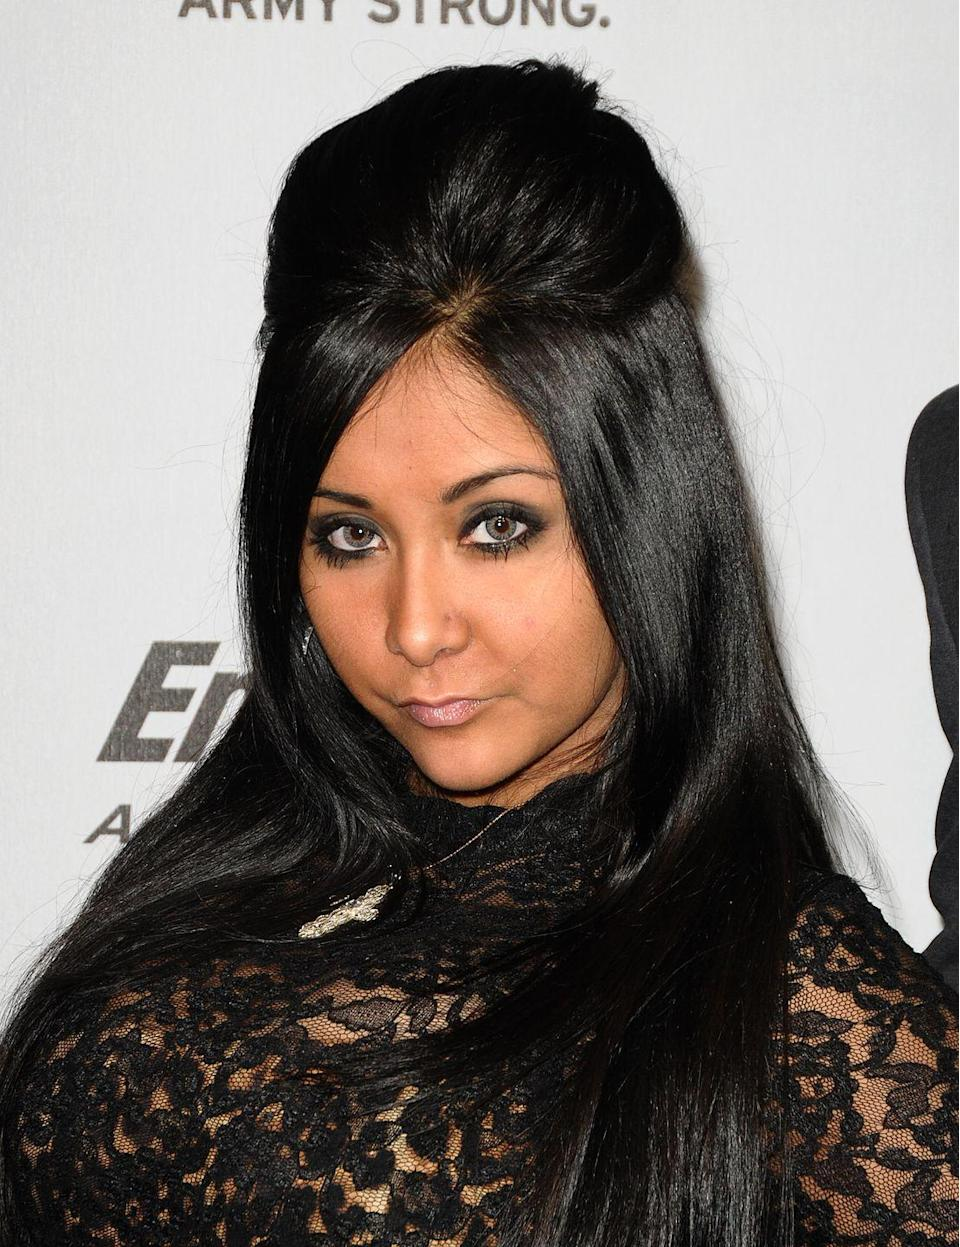 <p>Remember Bumpits? Yeah, us too. Thanks in part to <em>Jersey Shore,</em> this voluminous, pulled back look became a staple.</p>